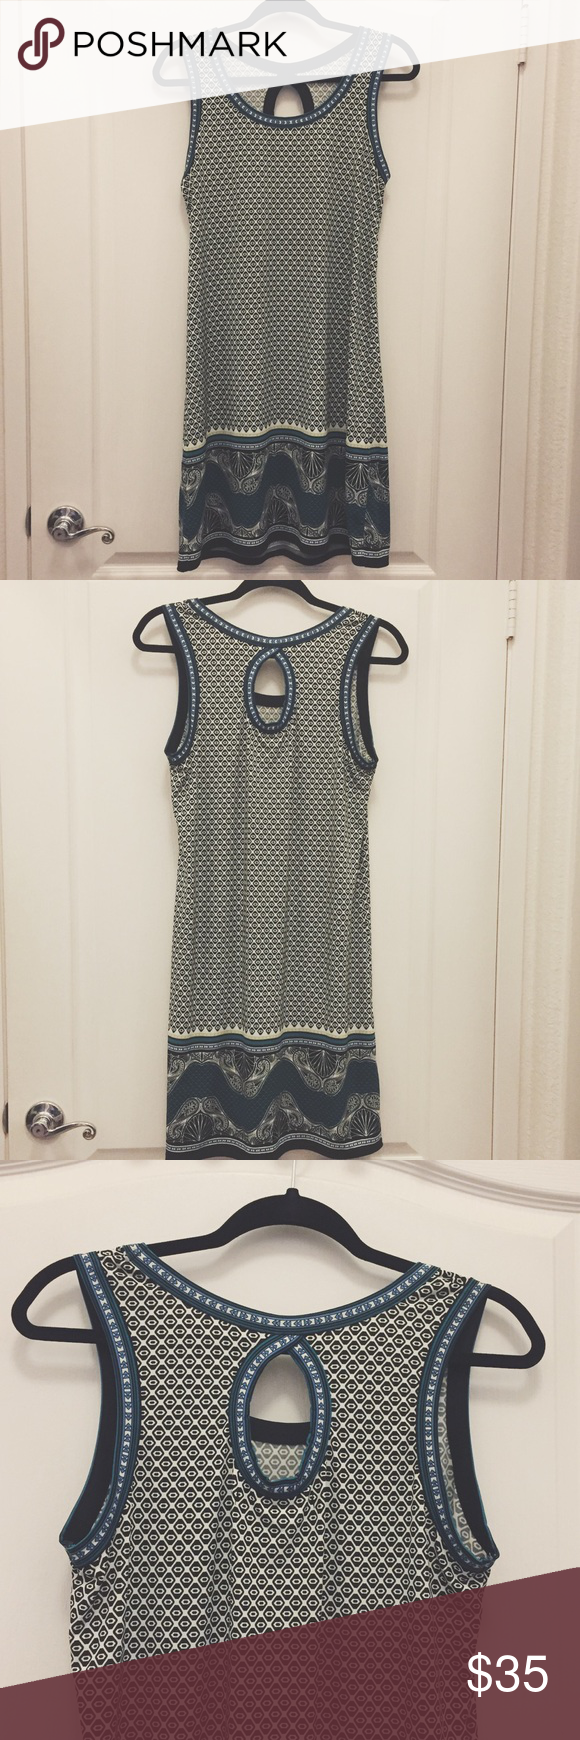 45c17f7637f7ec Max studio keyhole back dress Max Studio flowy printed tank dress with a  keyhole in the back. There is a tiny tear on the back right side but it's  barely ...